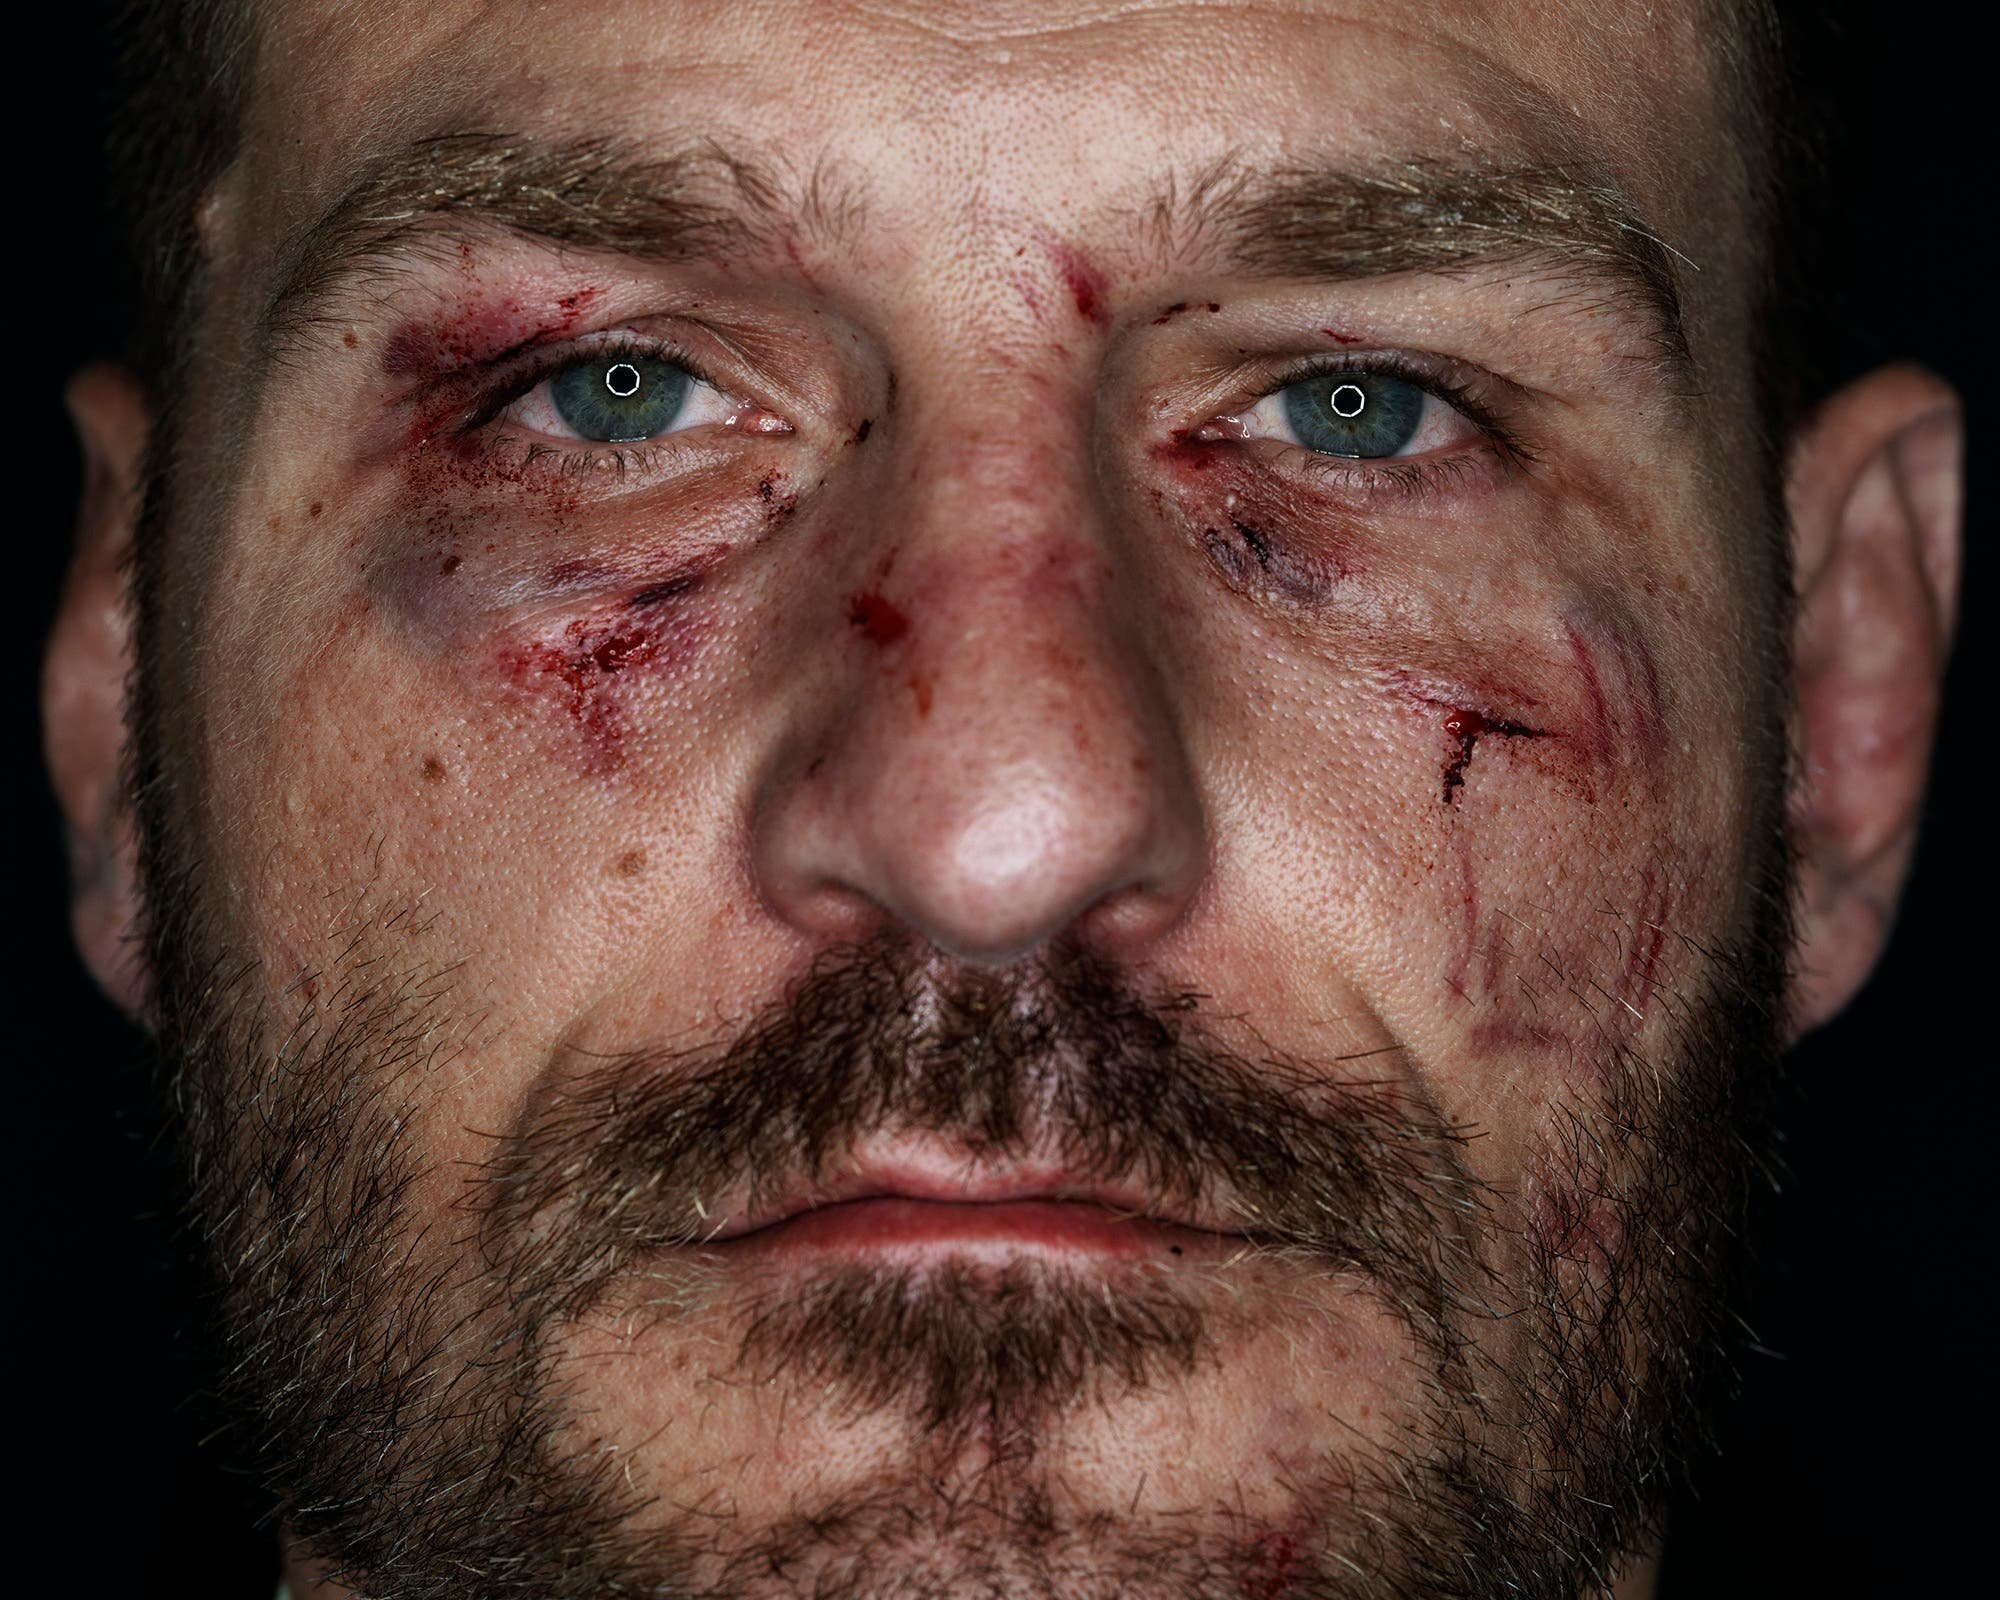 Kevin Lynch Portrays The Humanity Behind Fierce UFC Fighters